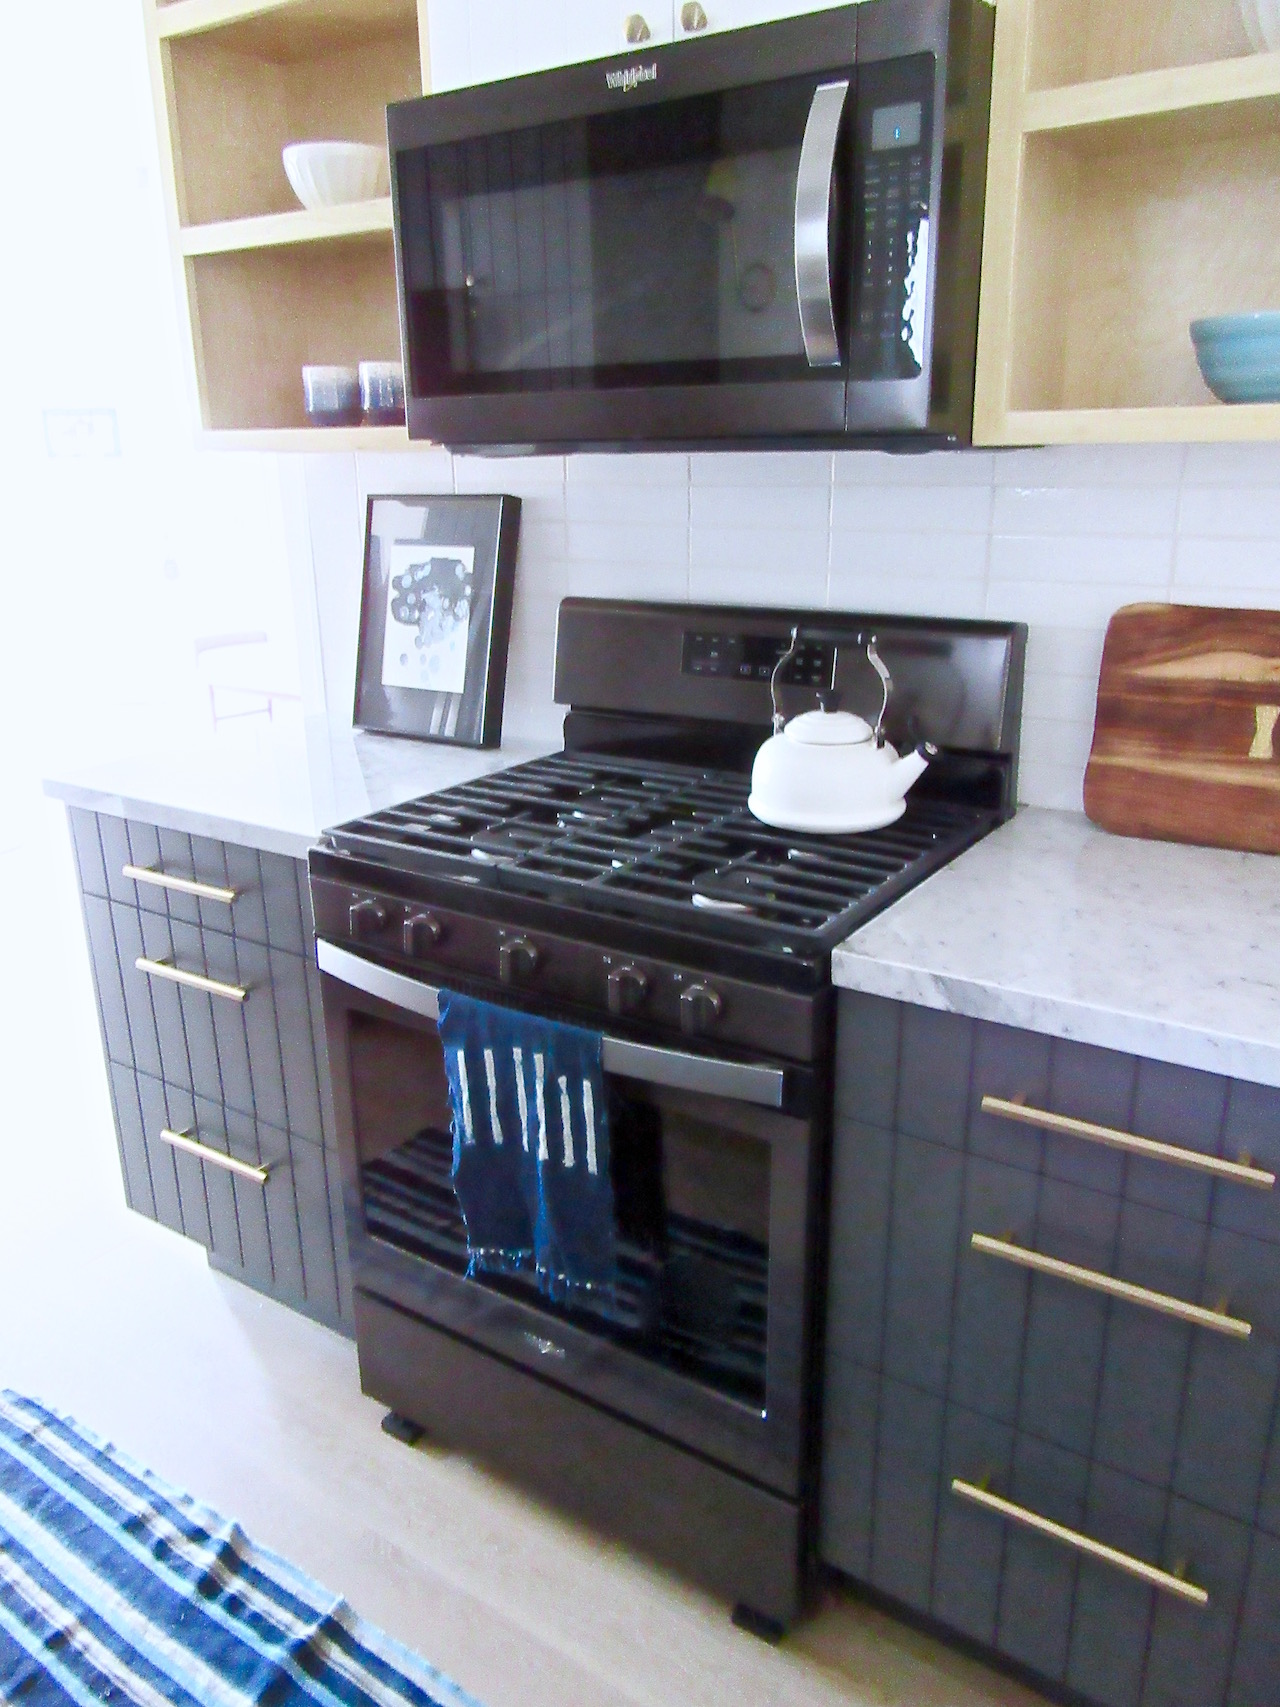 Black Design For Kitchen Silver Lake Small Kitchen Remodel Black Appliance Trend Cococozy